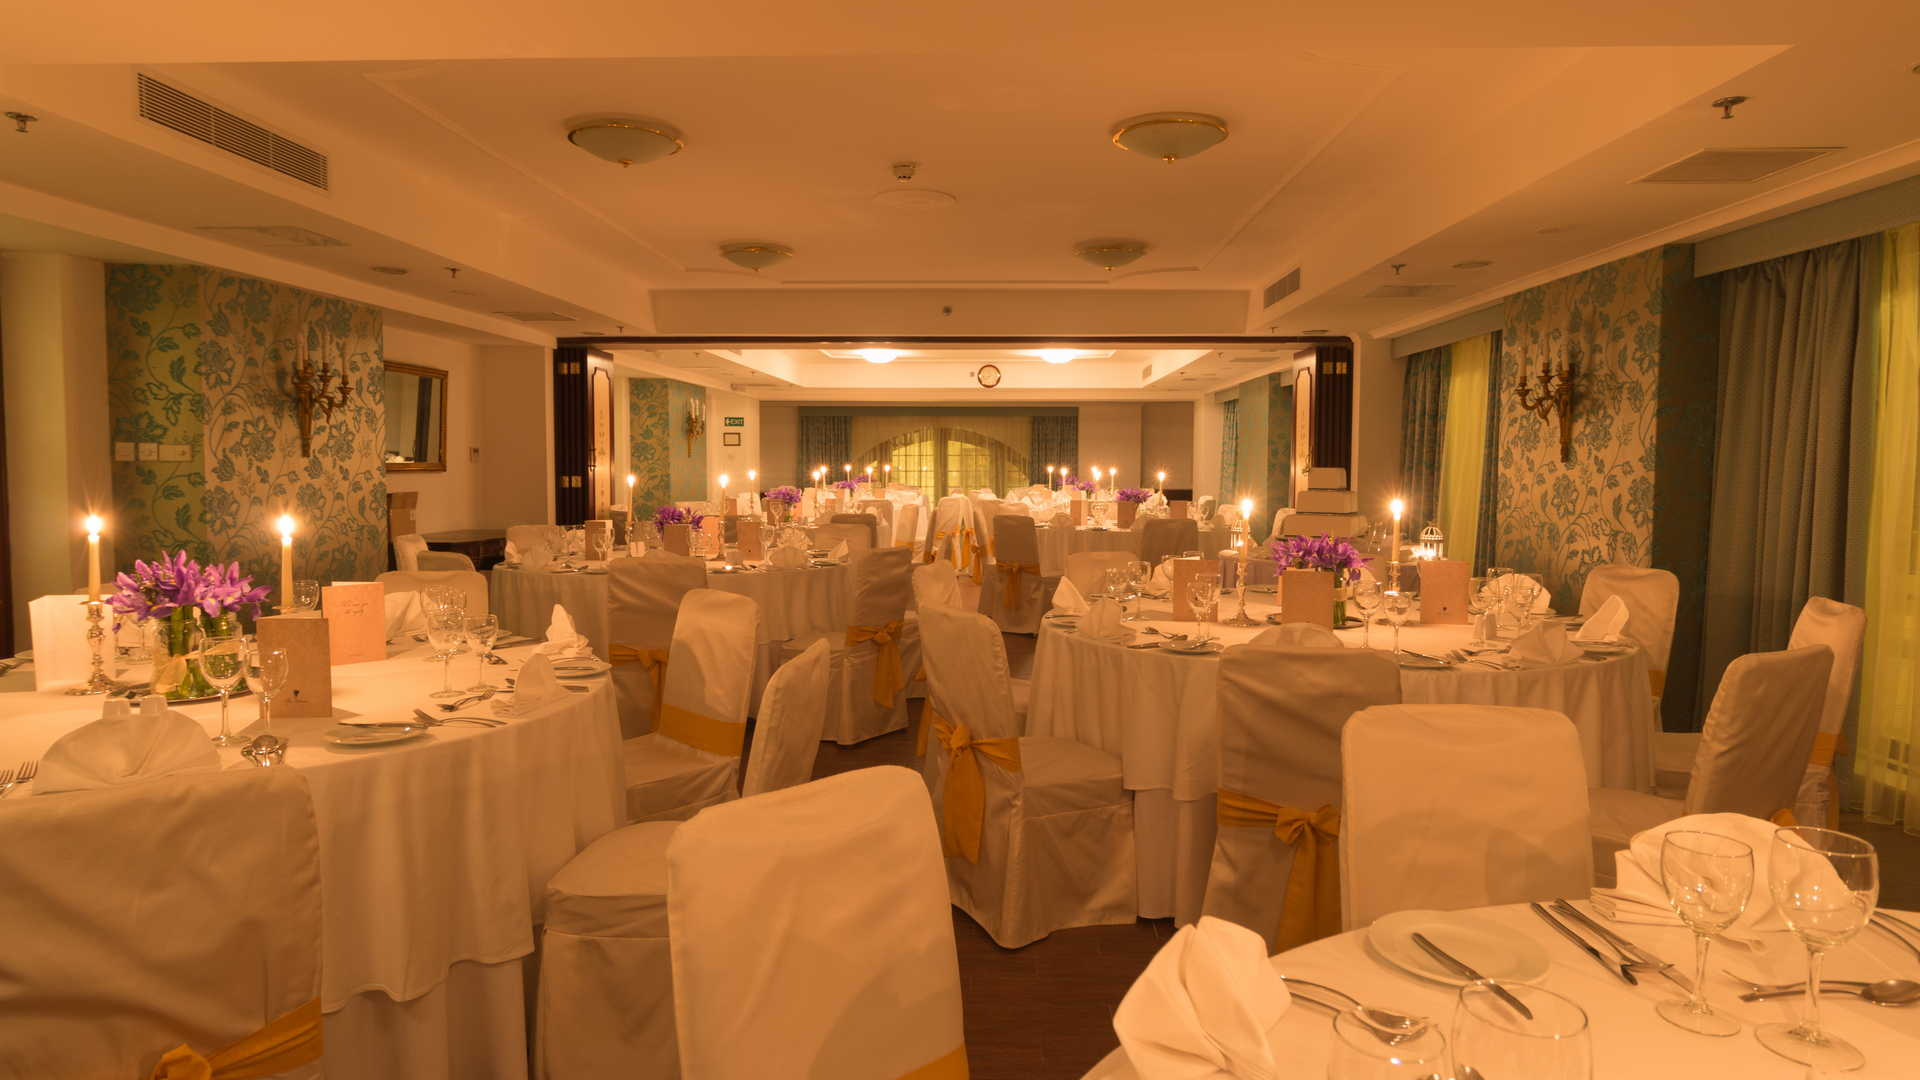 AX The Victoria Hotel - William Shakespeare Wedding Event